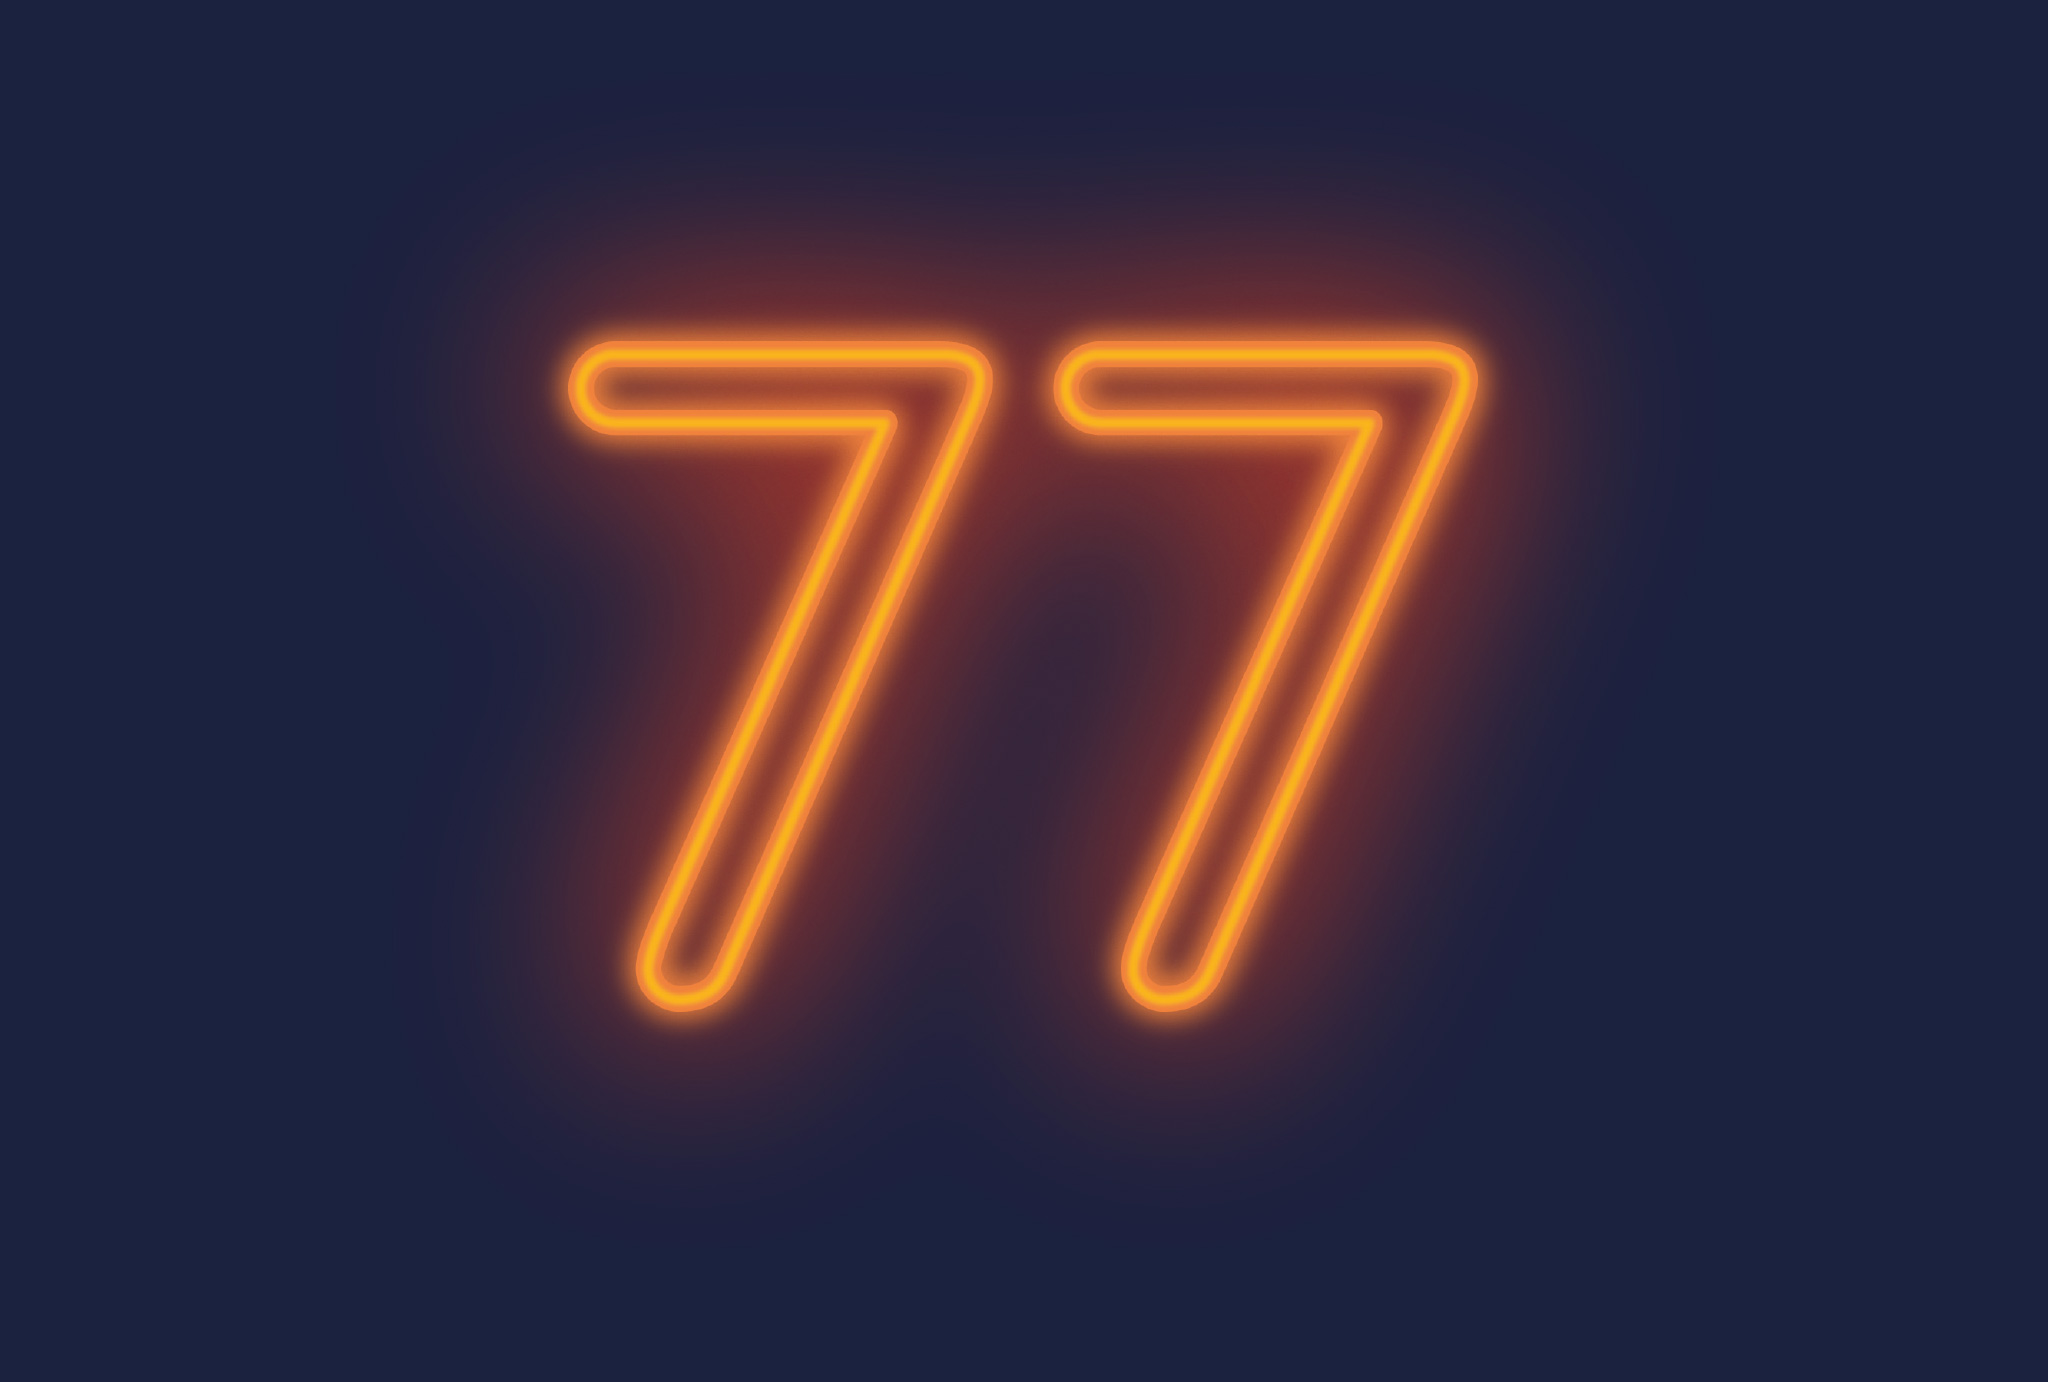 orange neon lights forming the number 77 on a dark blue background